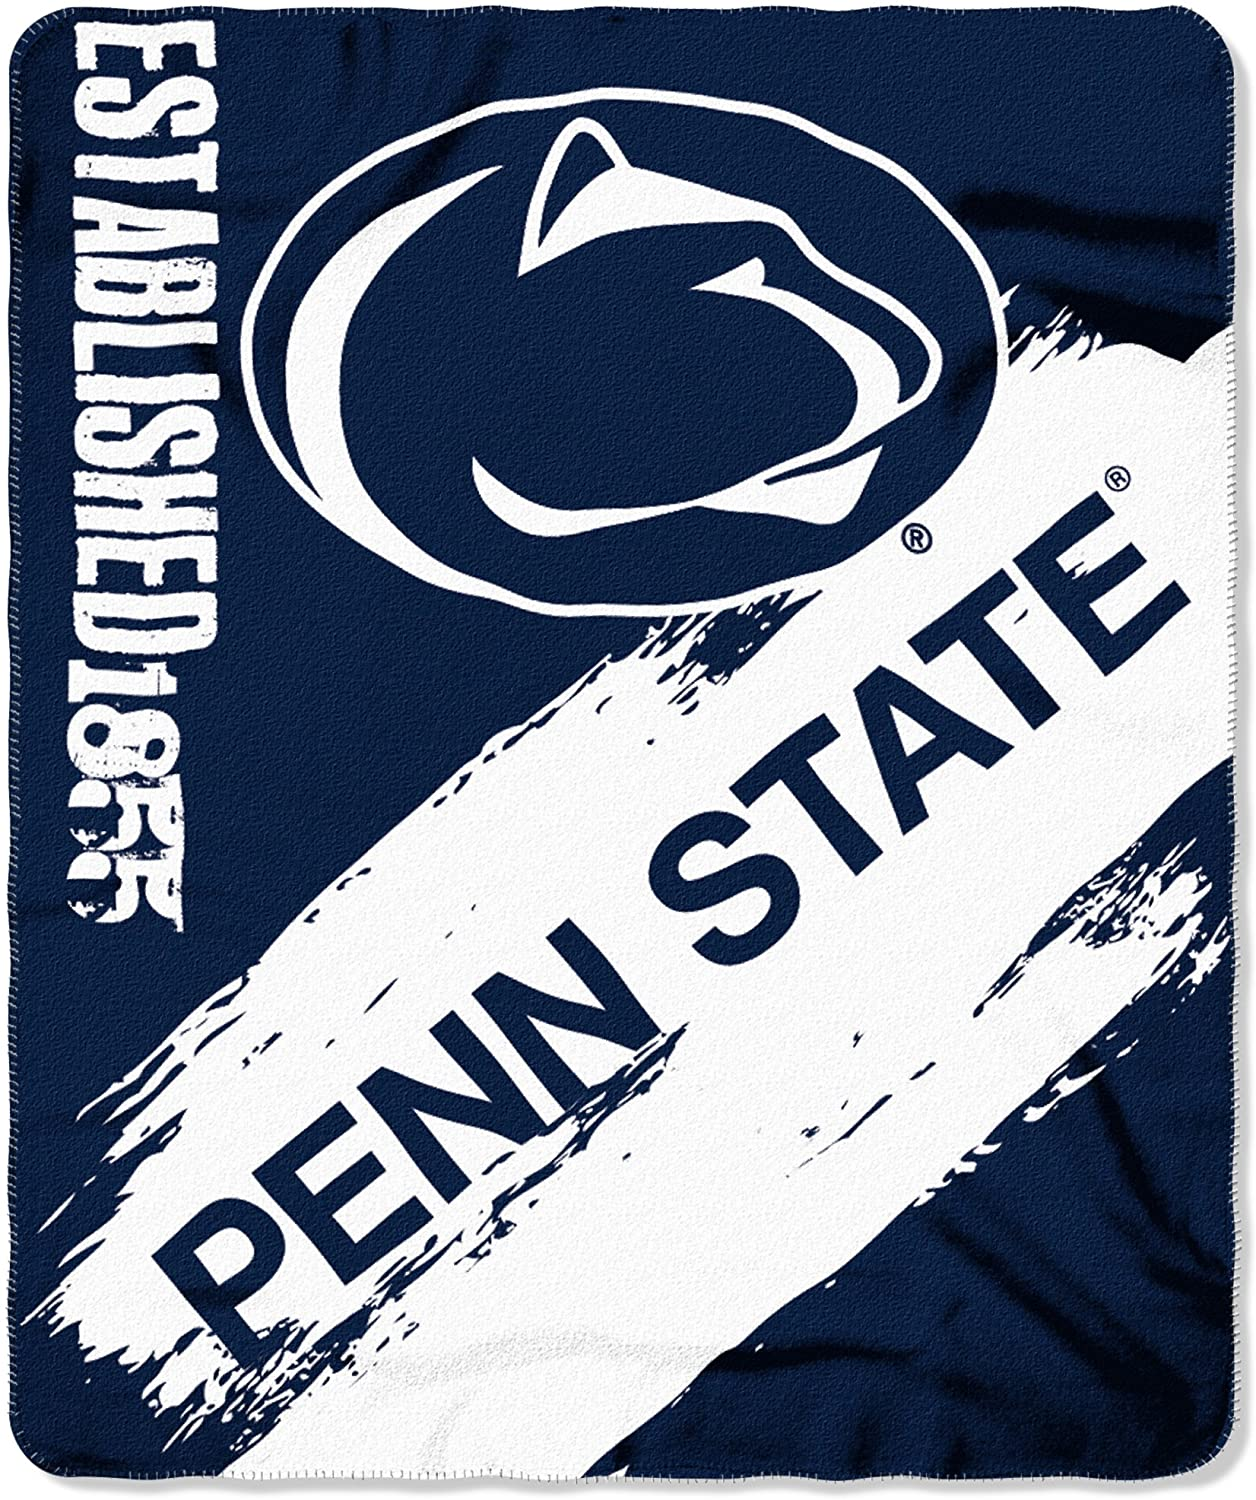 Officially Licensed Ncaa Printed Throw Penn State Nittany Lions Fleece Blanket